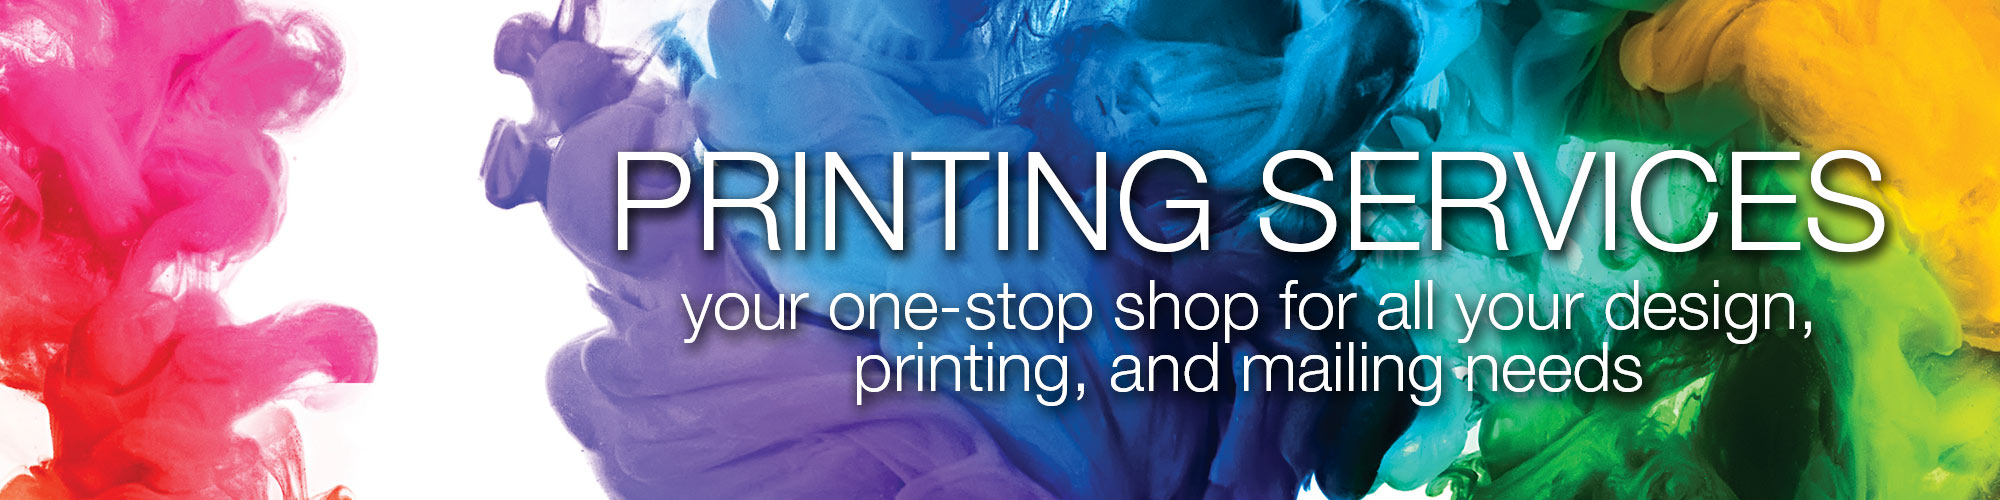 Printing Services: your one-stop shop for all your design, printing, and mailing needs